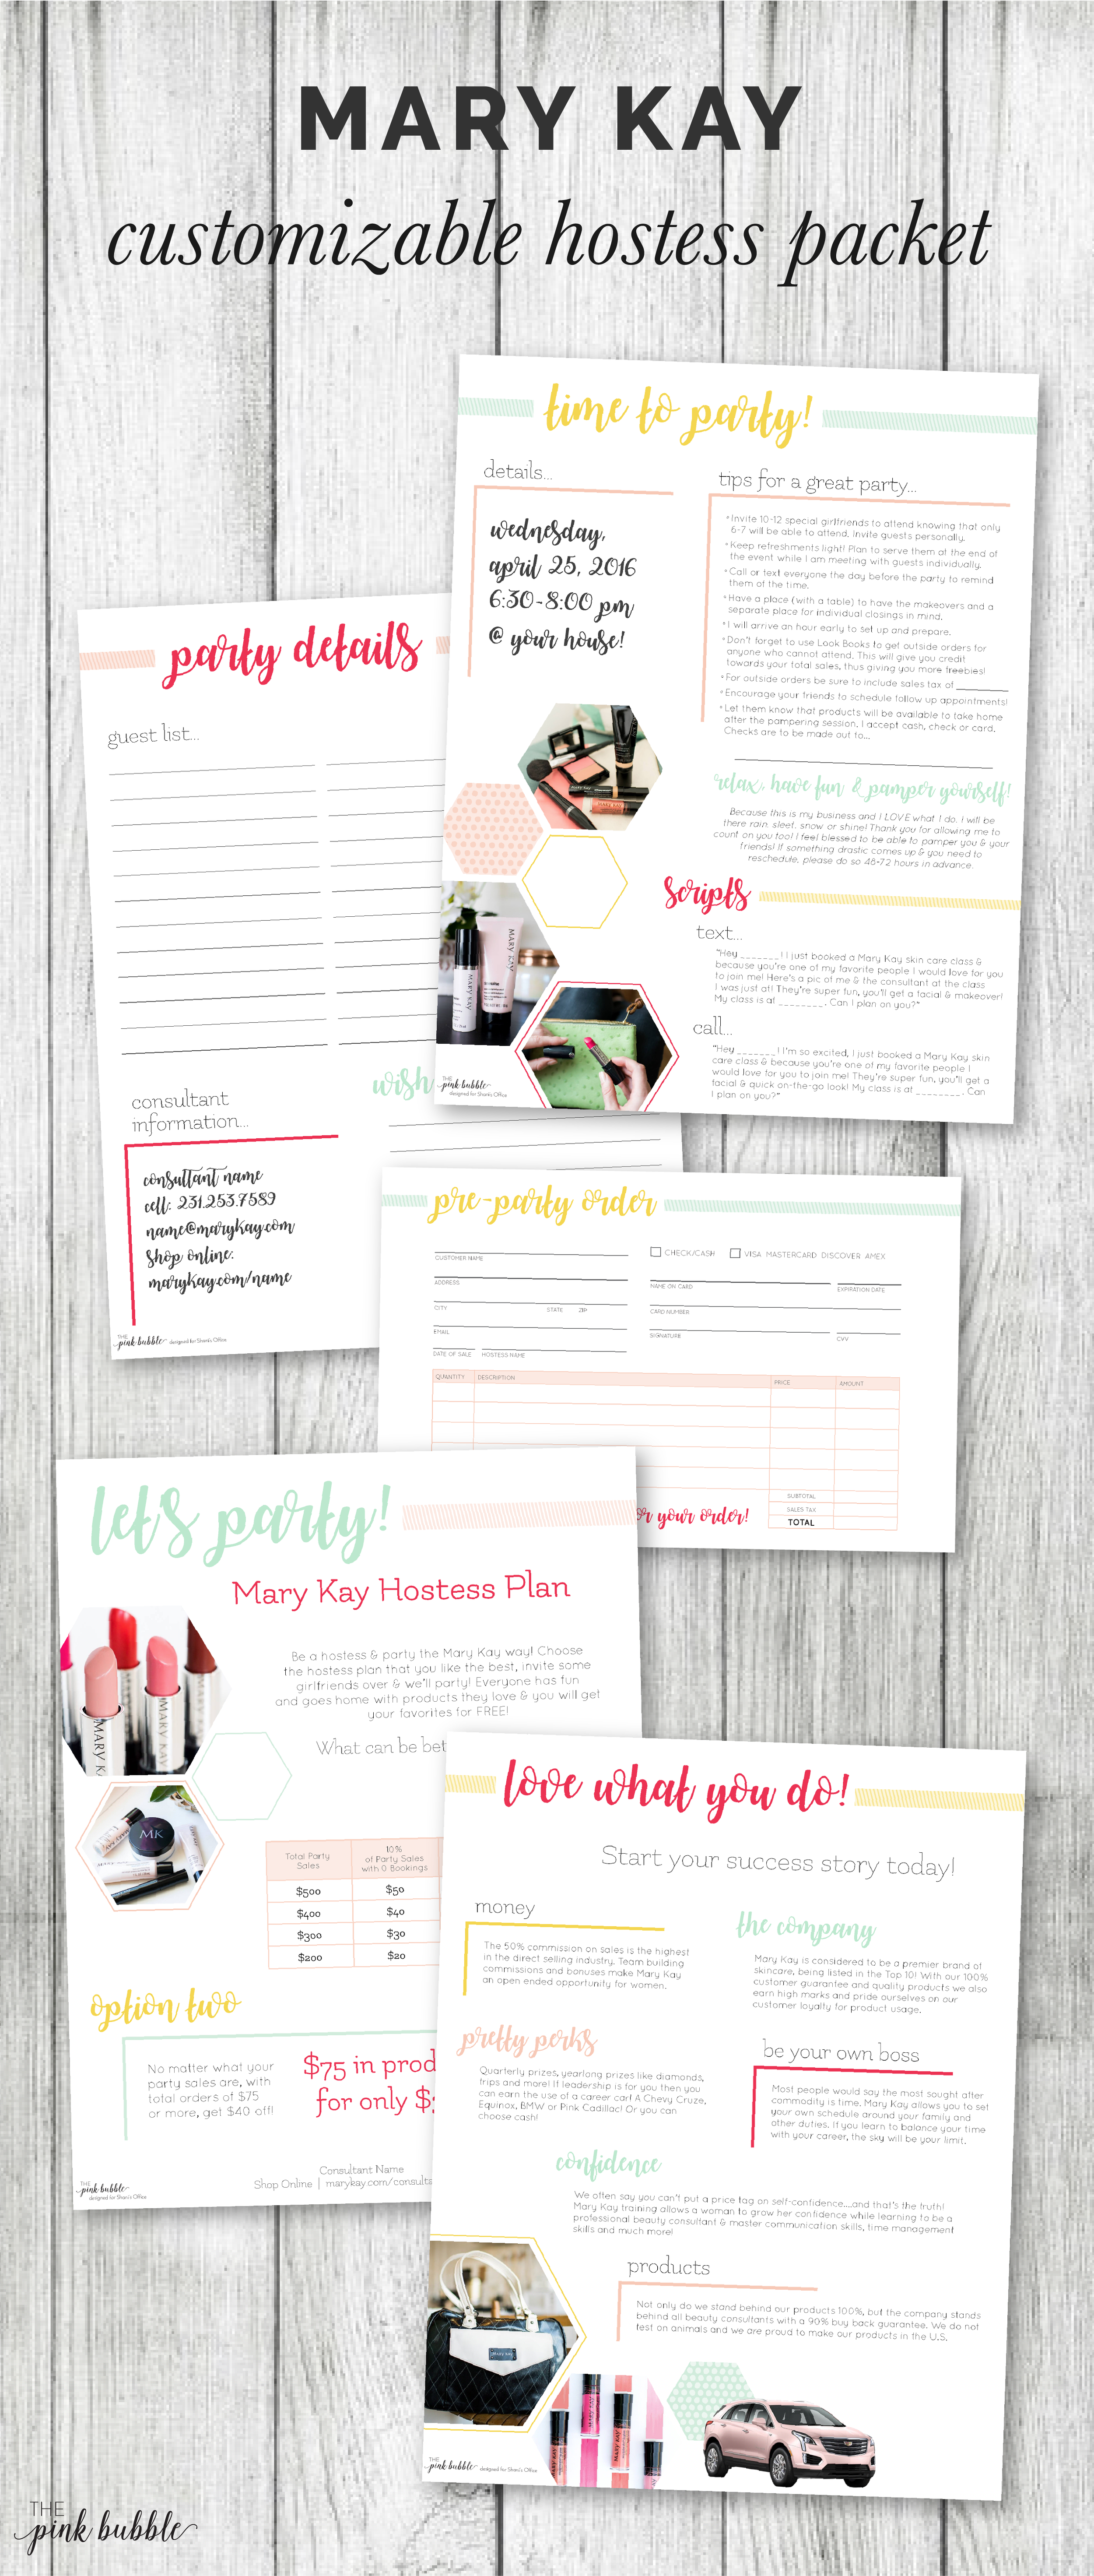 Our Light & Bright Hostess Packet is so simple & on trend. It includes  everything you need in your hostess packet, except for Look Books & candy  of course! :) There are customizable sections for party information and  your personal information! This packet was designed especially for Shani's  Office & I'm so excited to share it with you guys as well!  You can find the packet HERE.  Enjoy!